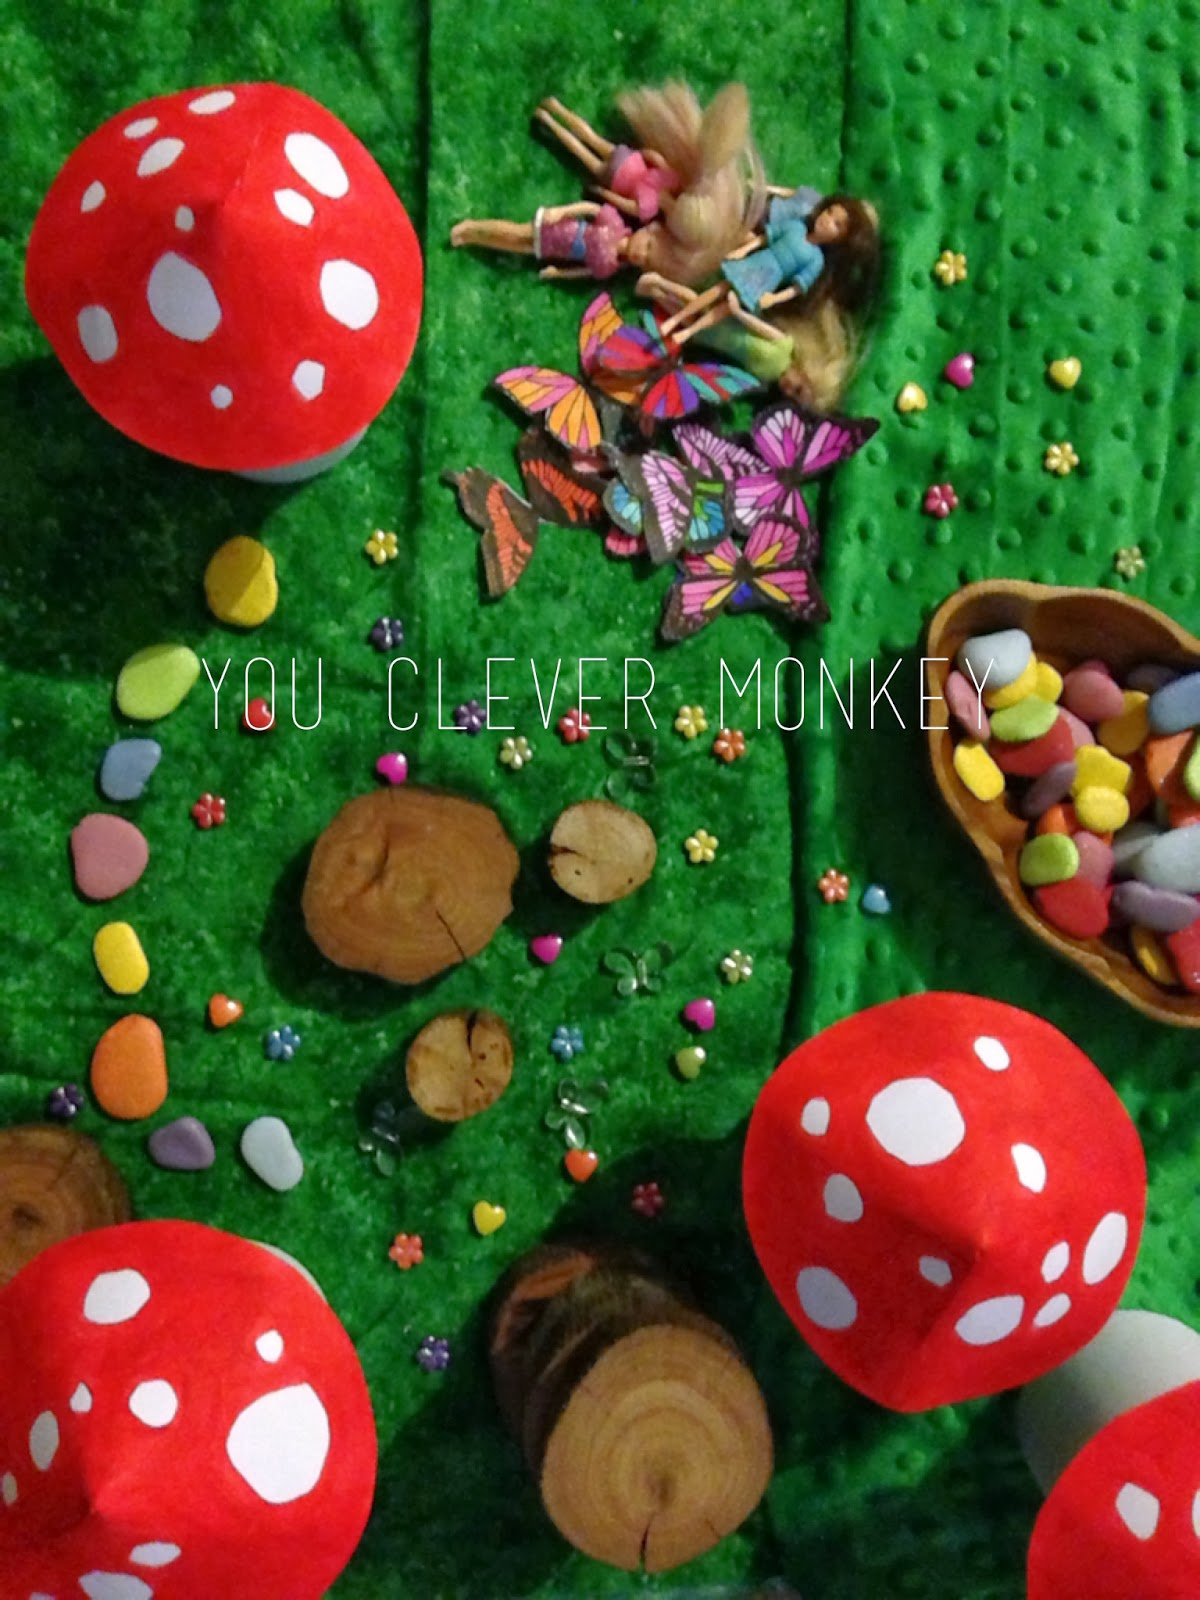 DIY fairy play - make your own fairy scene #youclevermonkey